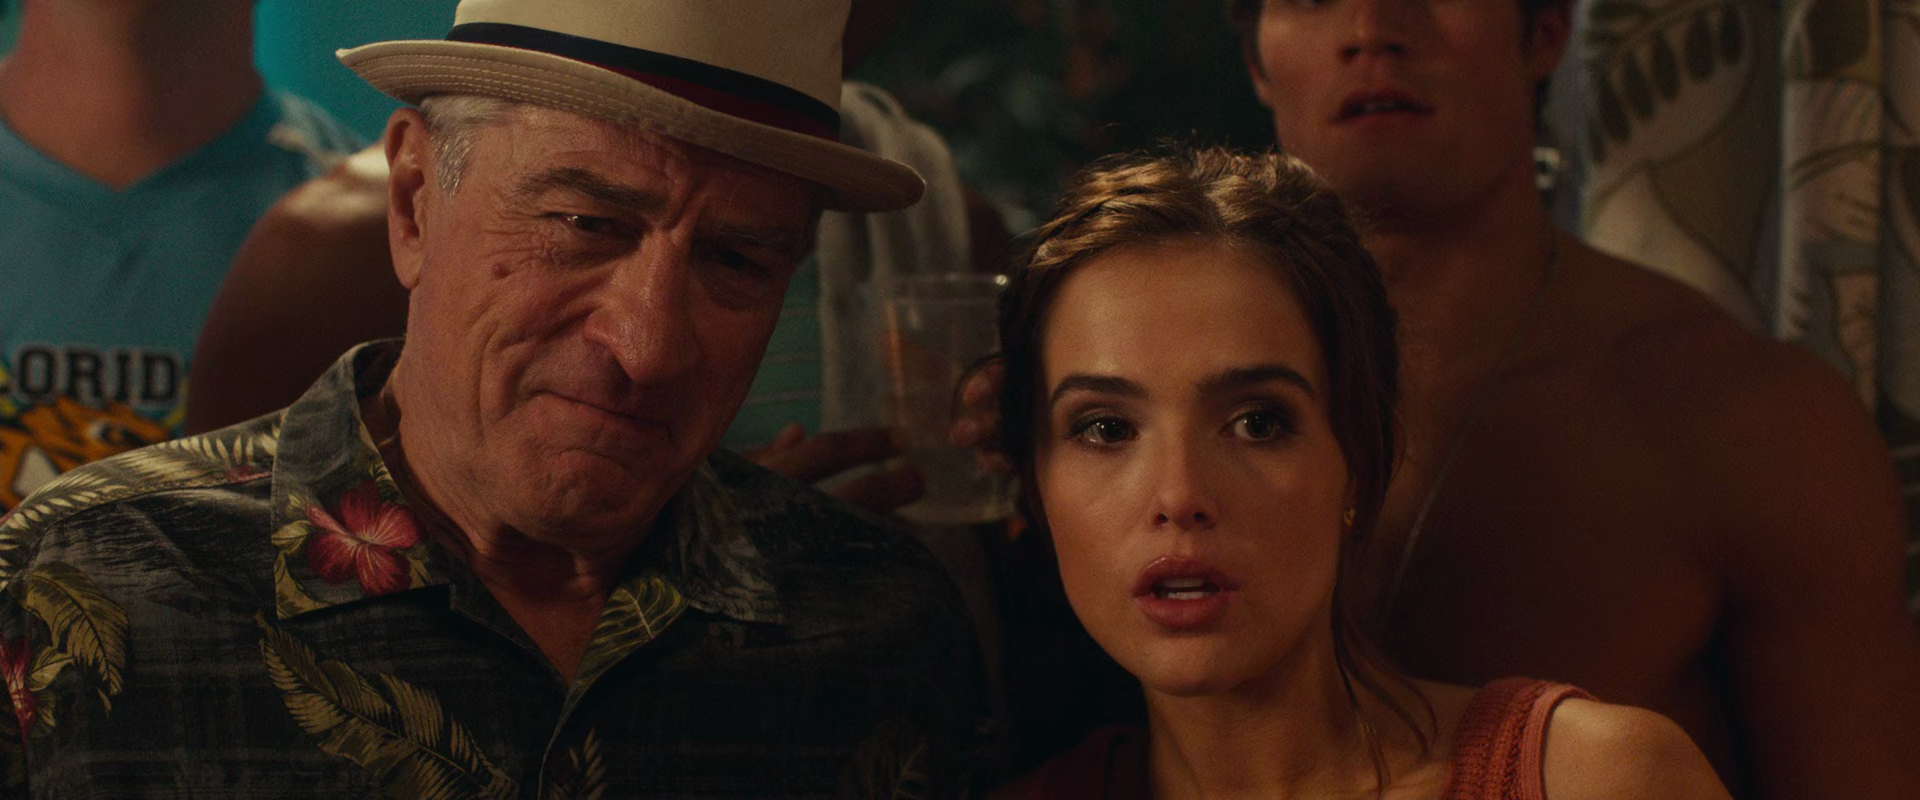 Dirty Grandpa Trailer Shows Zac Efron And Robert De Niro On A Raunchy Road Trip Daily Mail Online